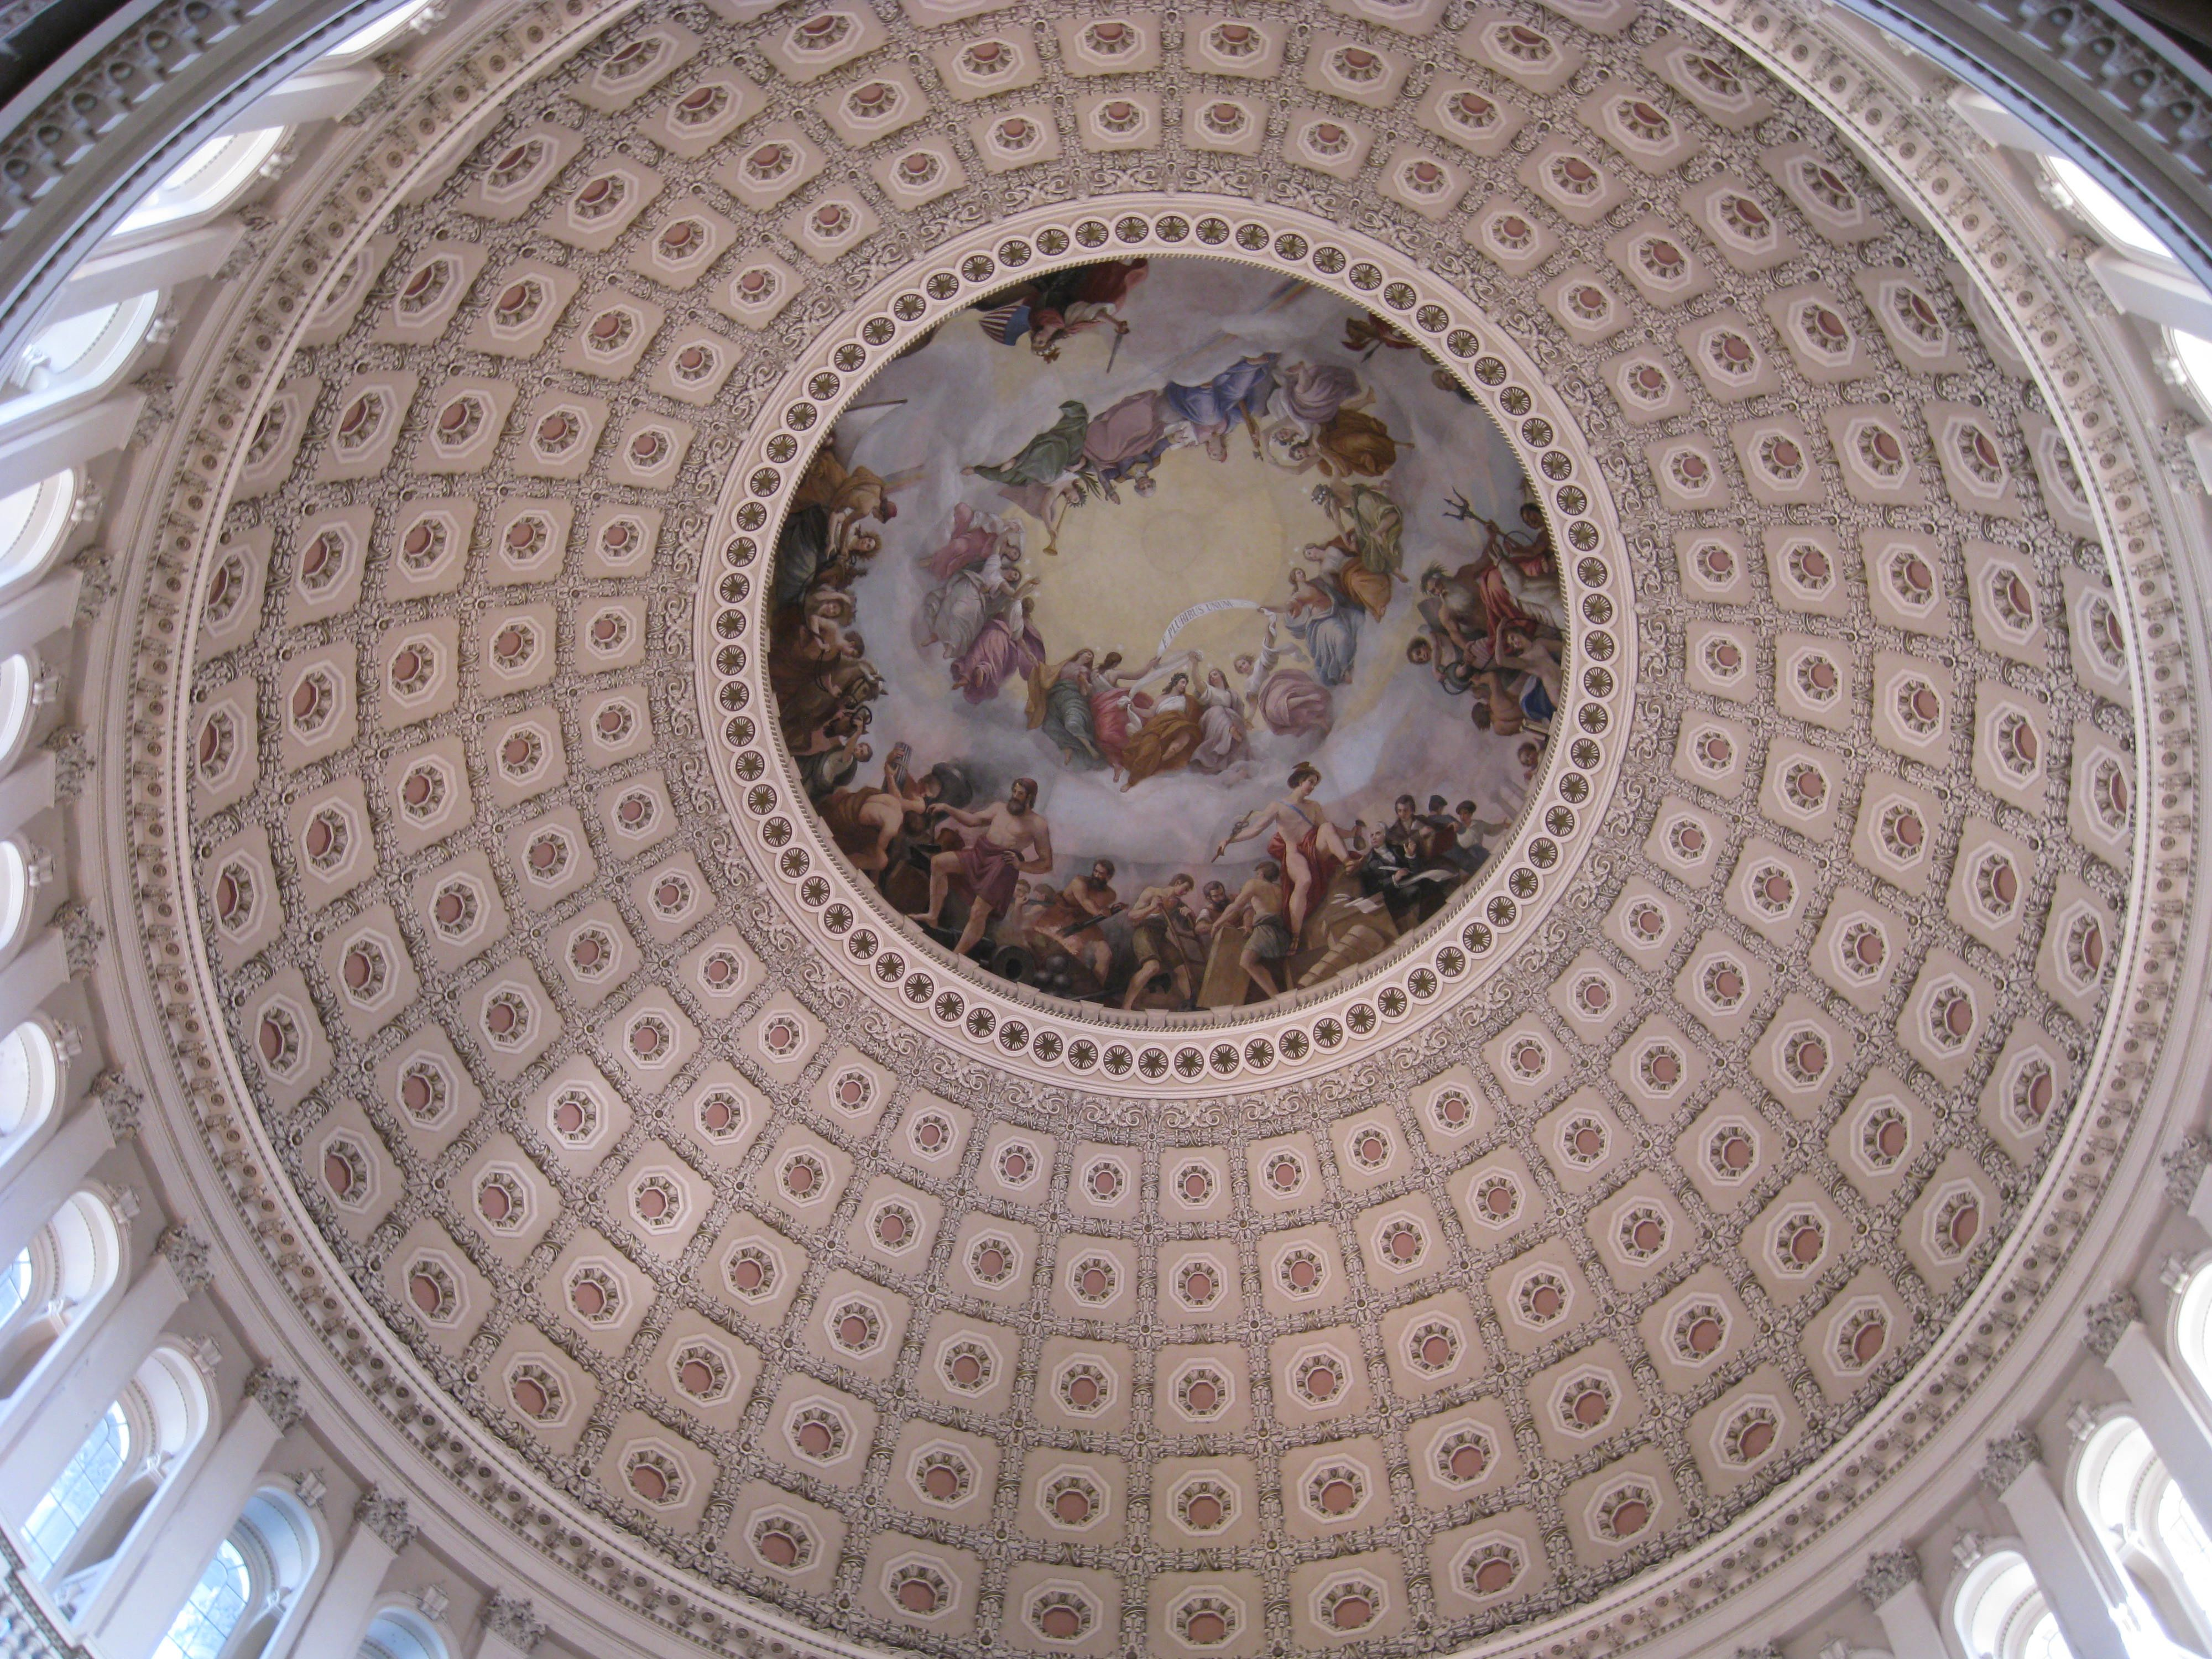 Photo: Inside the US Capitol Dome | Where is Yvette?